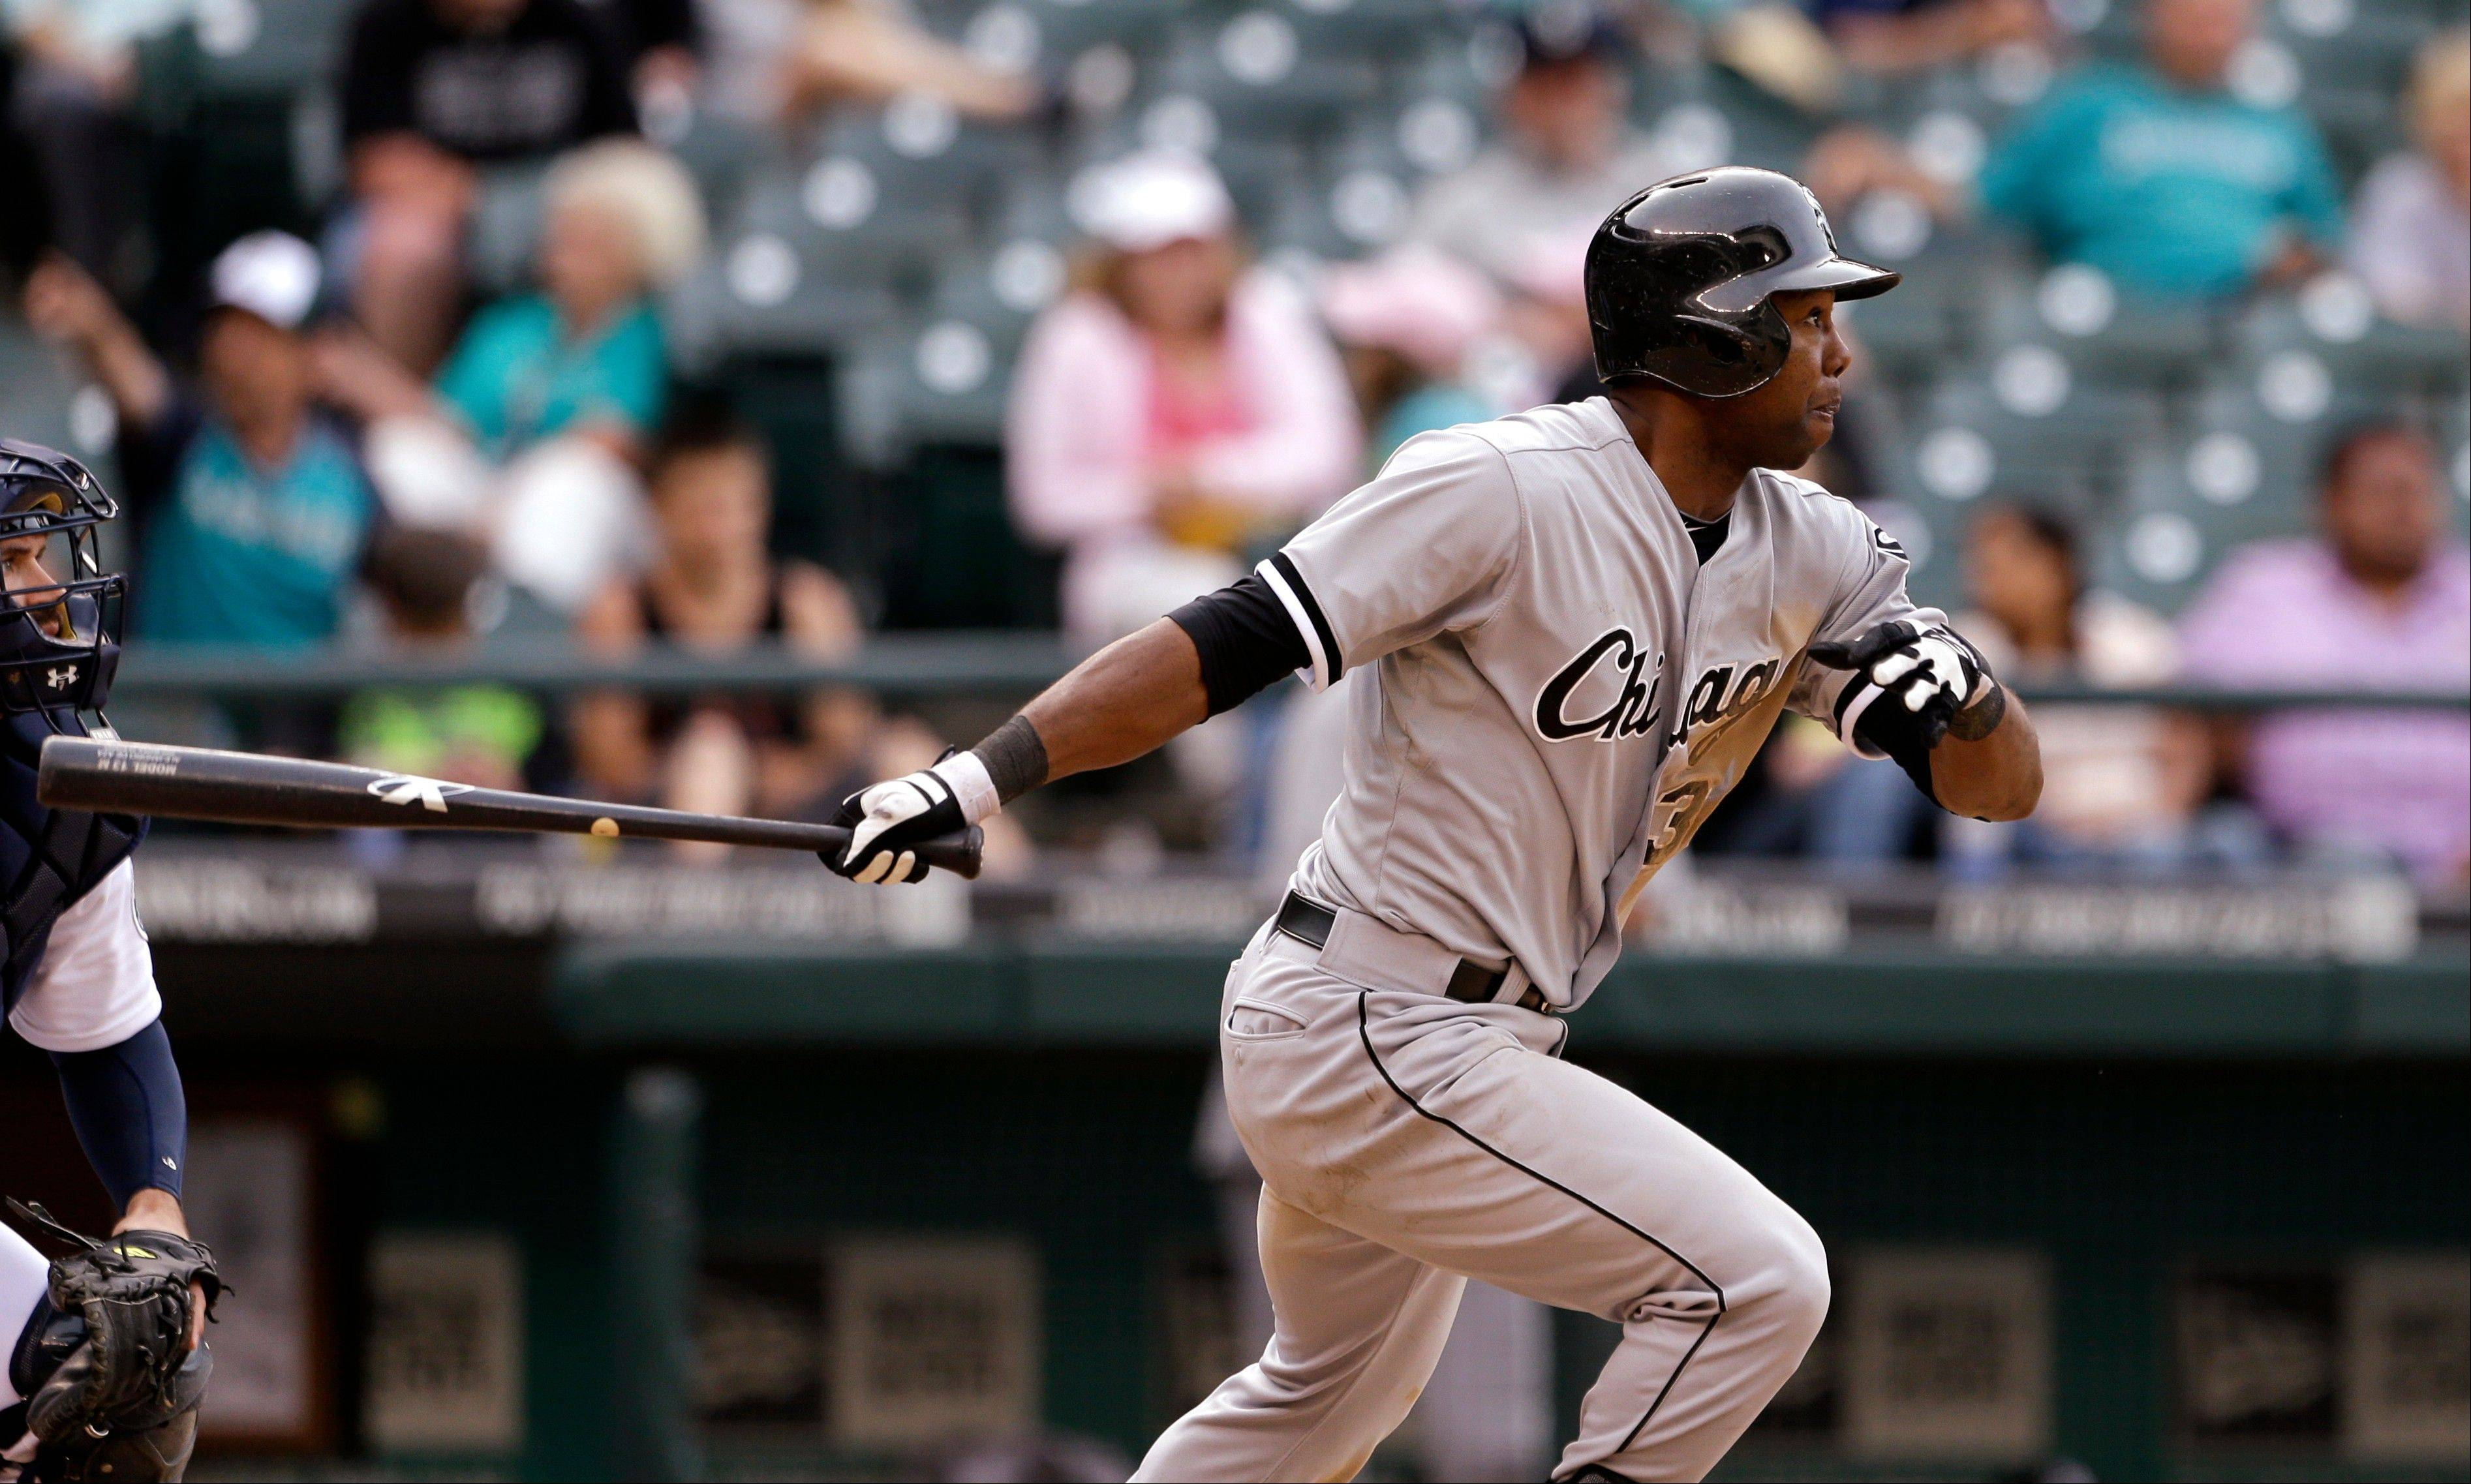 Chicago White Sox's Alejandro De Aza drives in a run against the Seattle Mariners in the 16th inning of a baseball game on Wednesday, June 5, 2013, in Seattle.